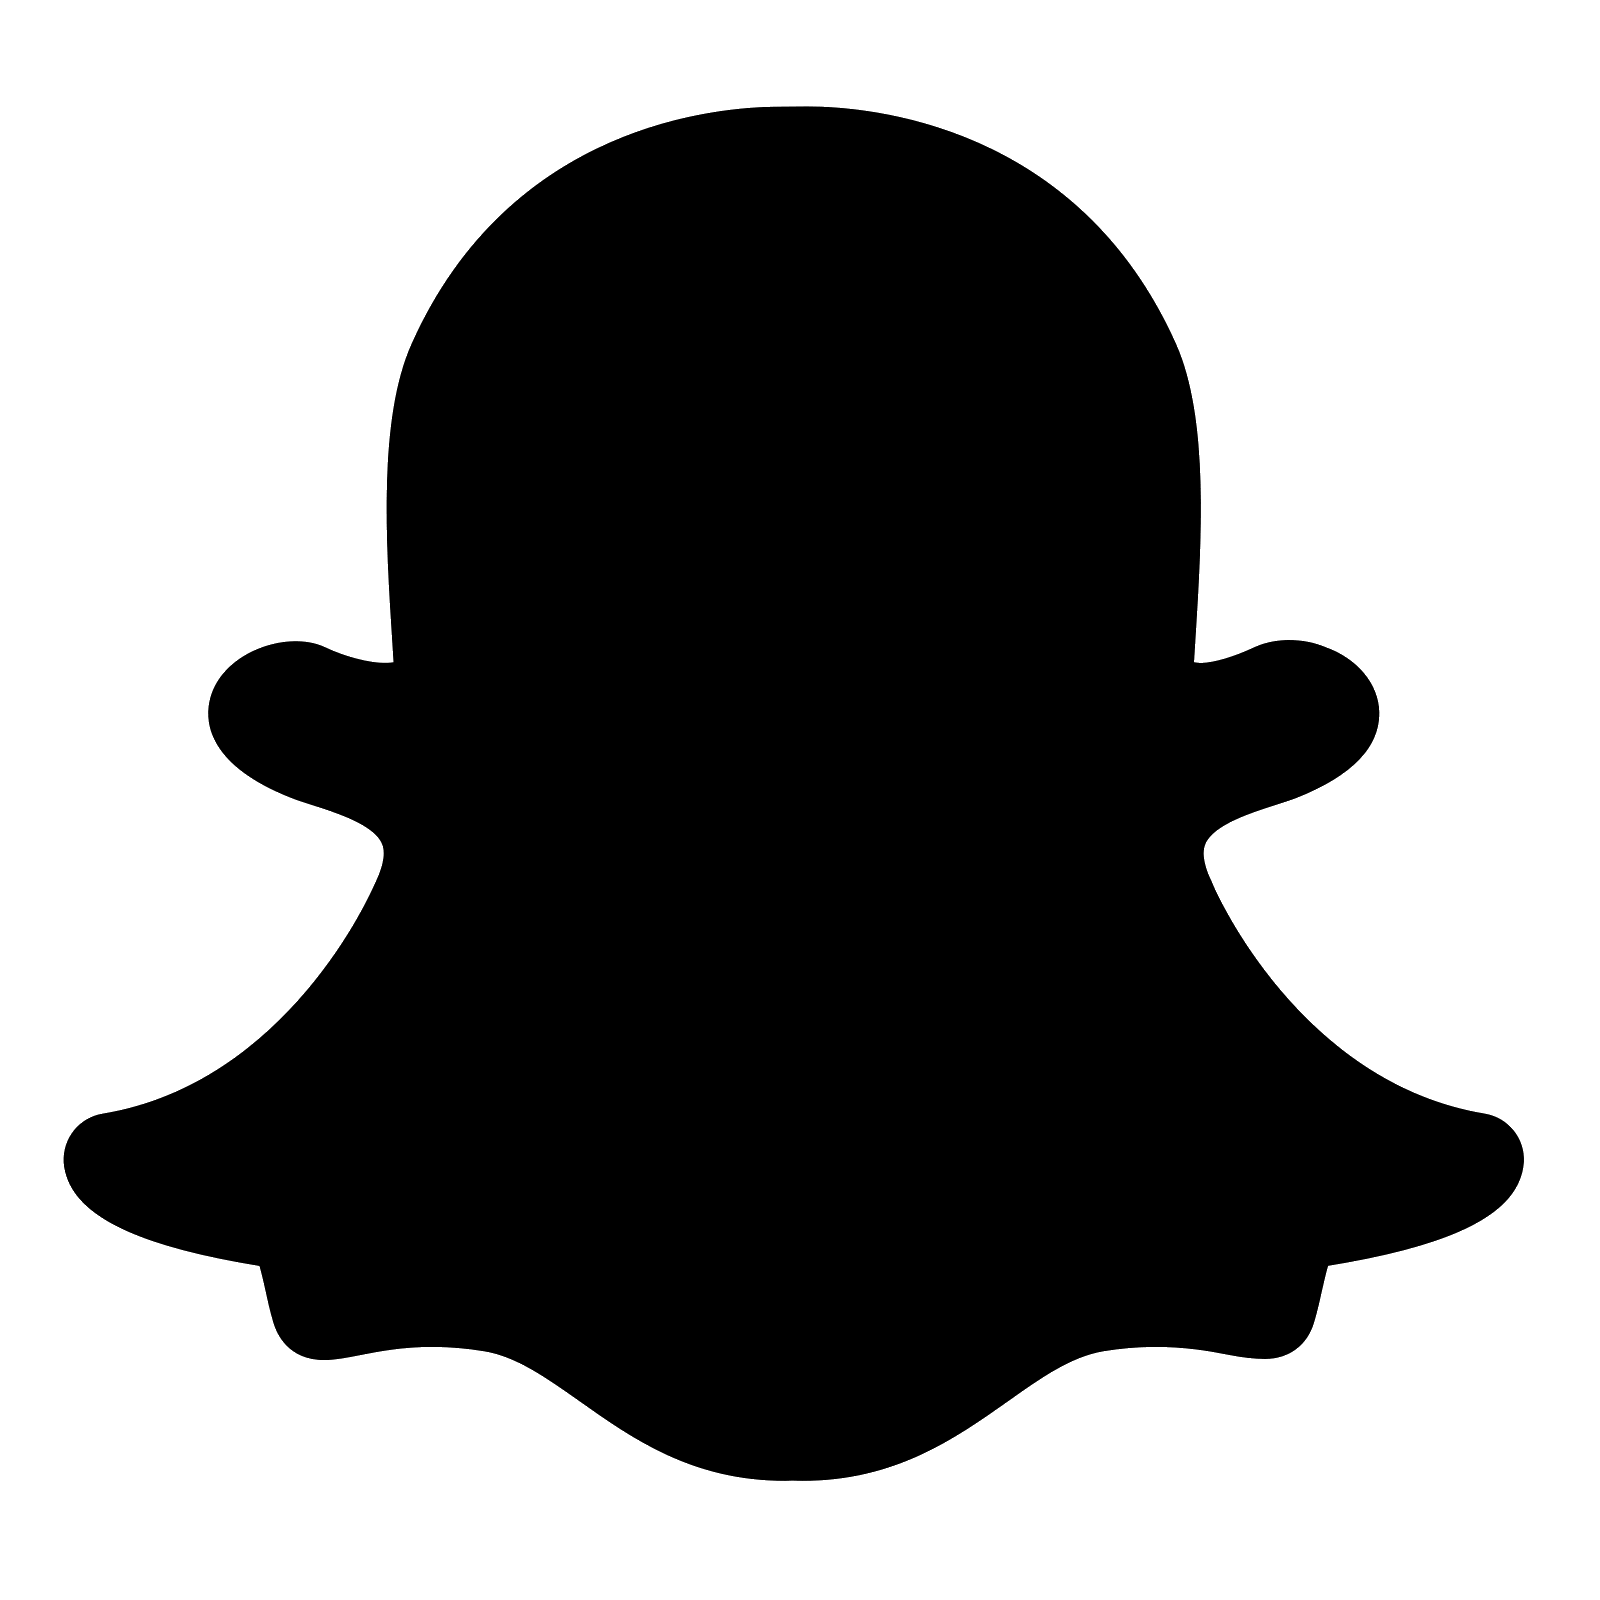 Snapchat logo png black. Filled